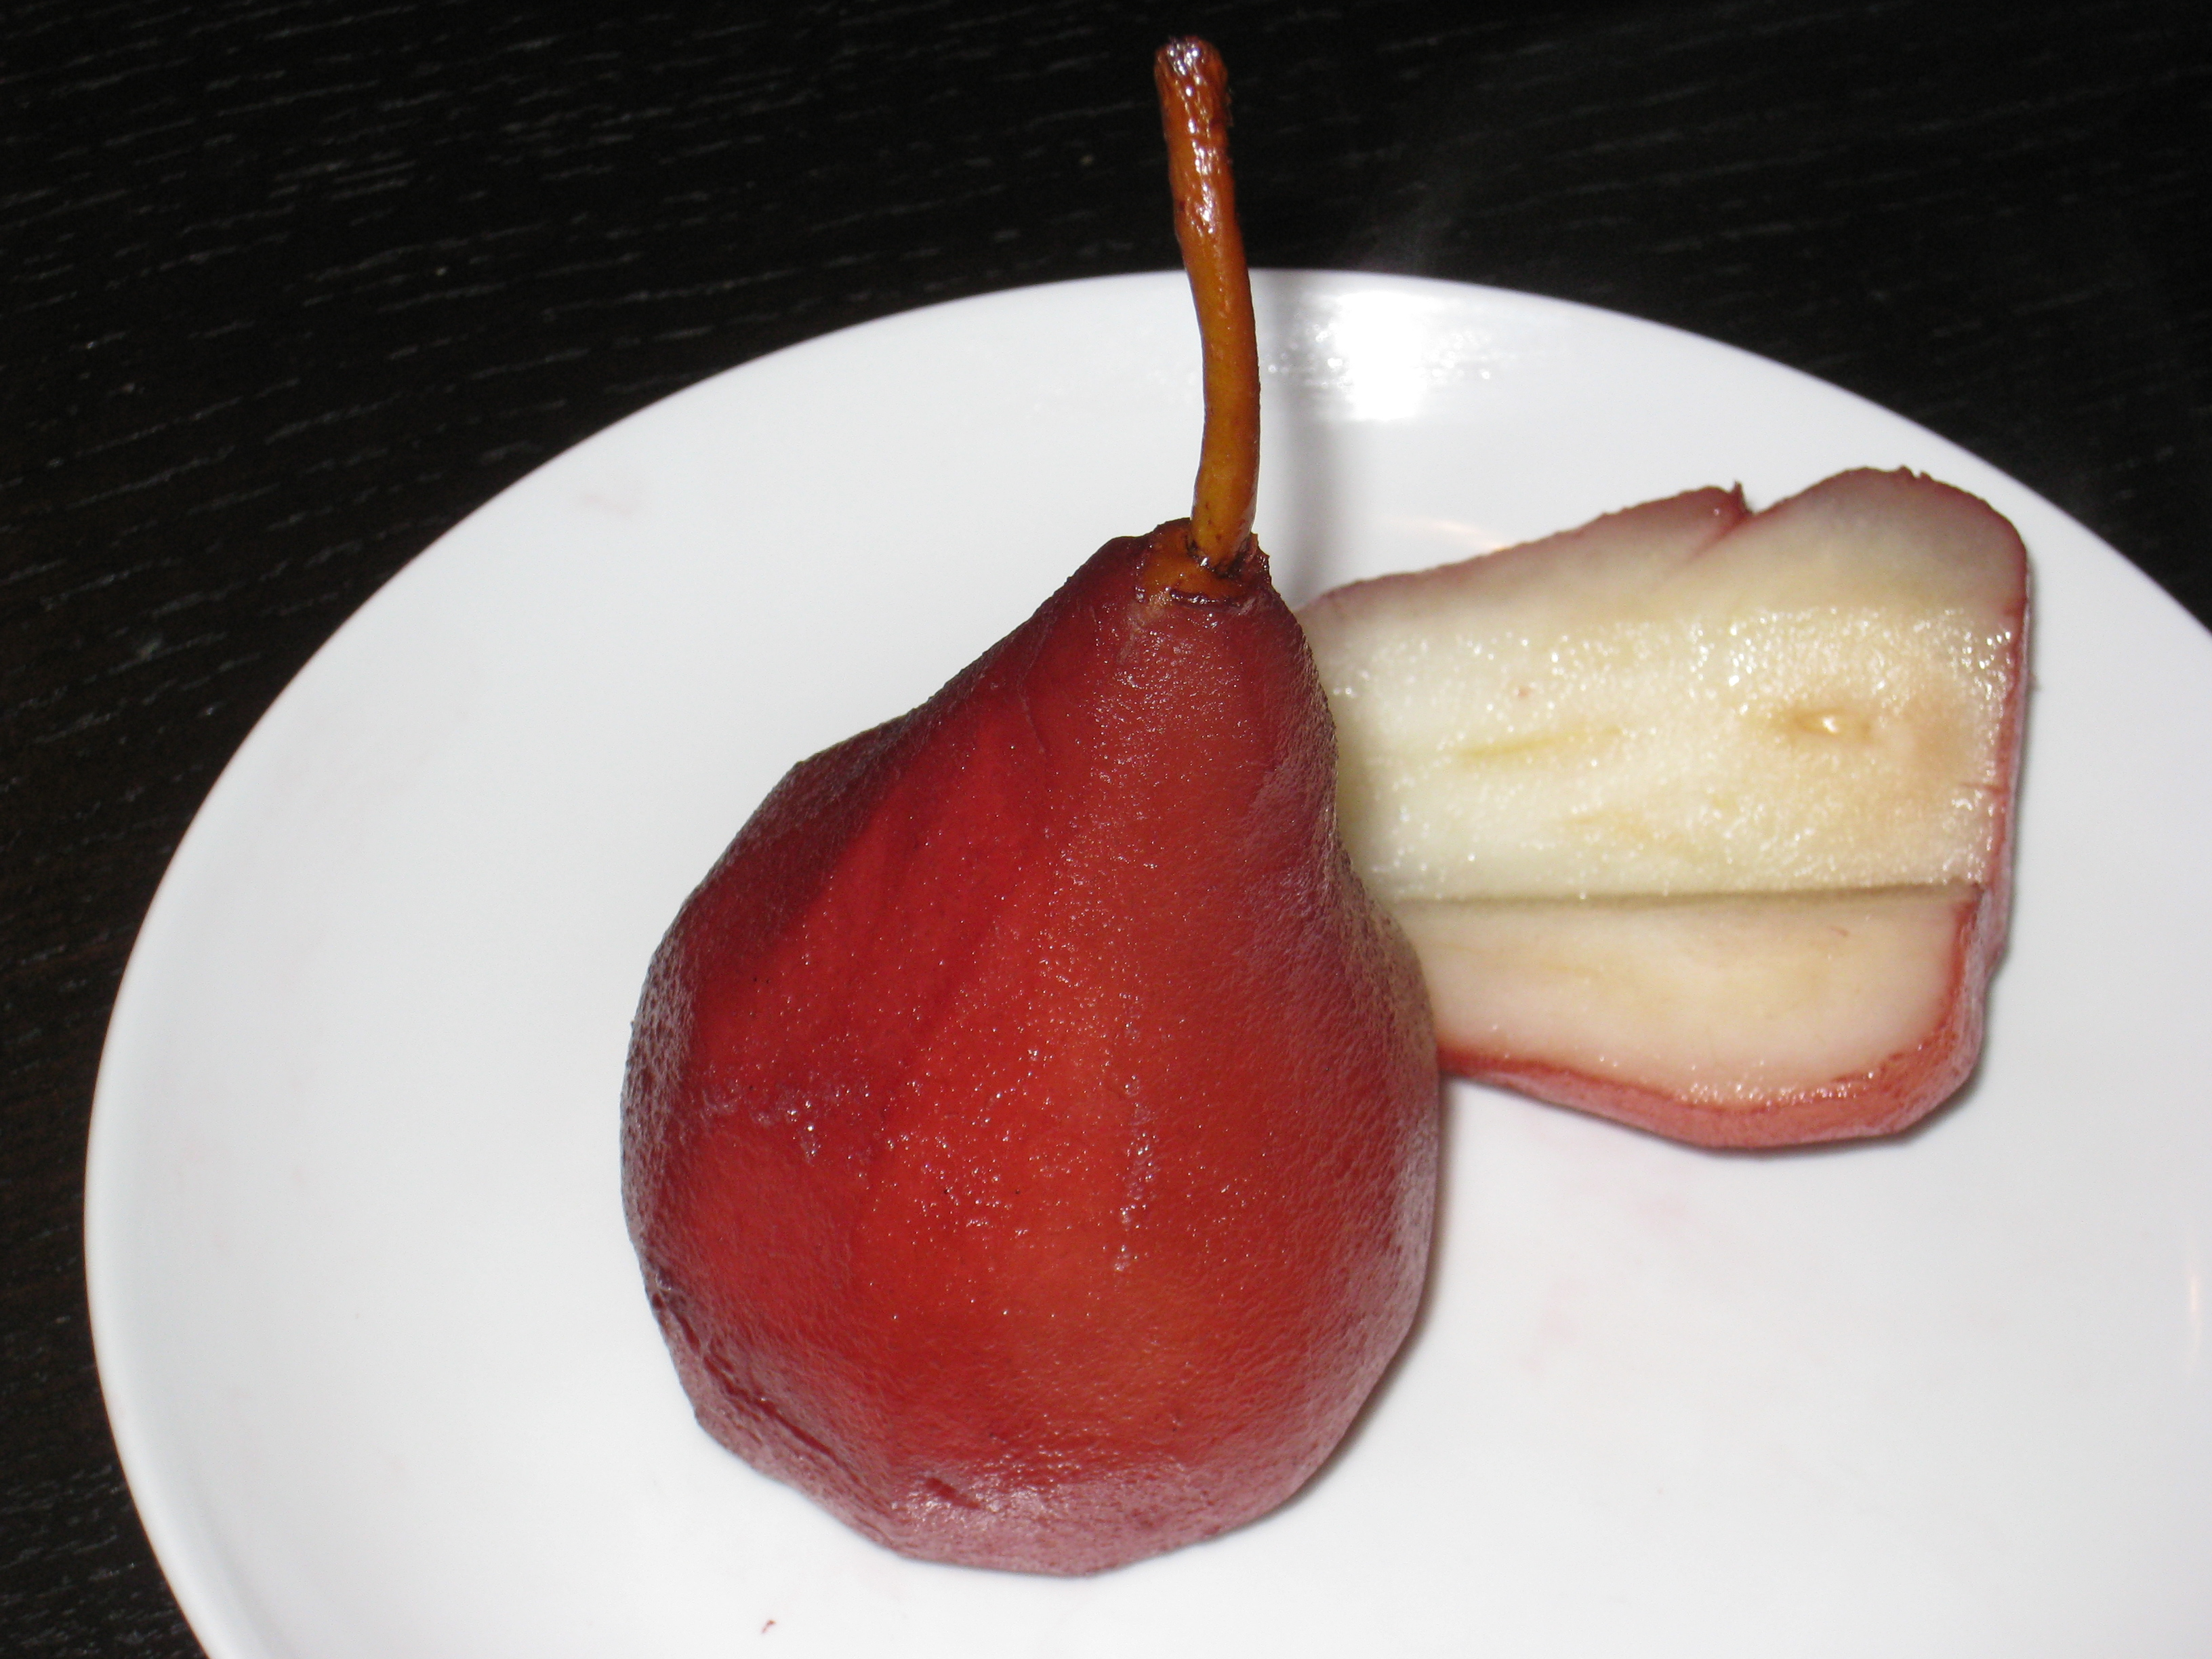 Recipe strawberries and pears poached in port nermo blog for Poached strawberries